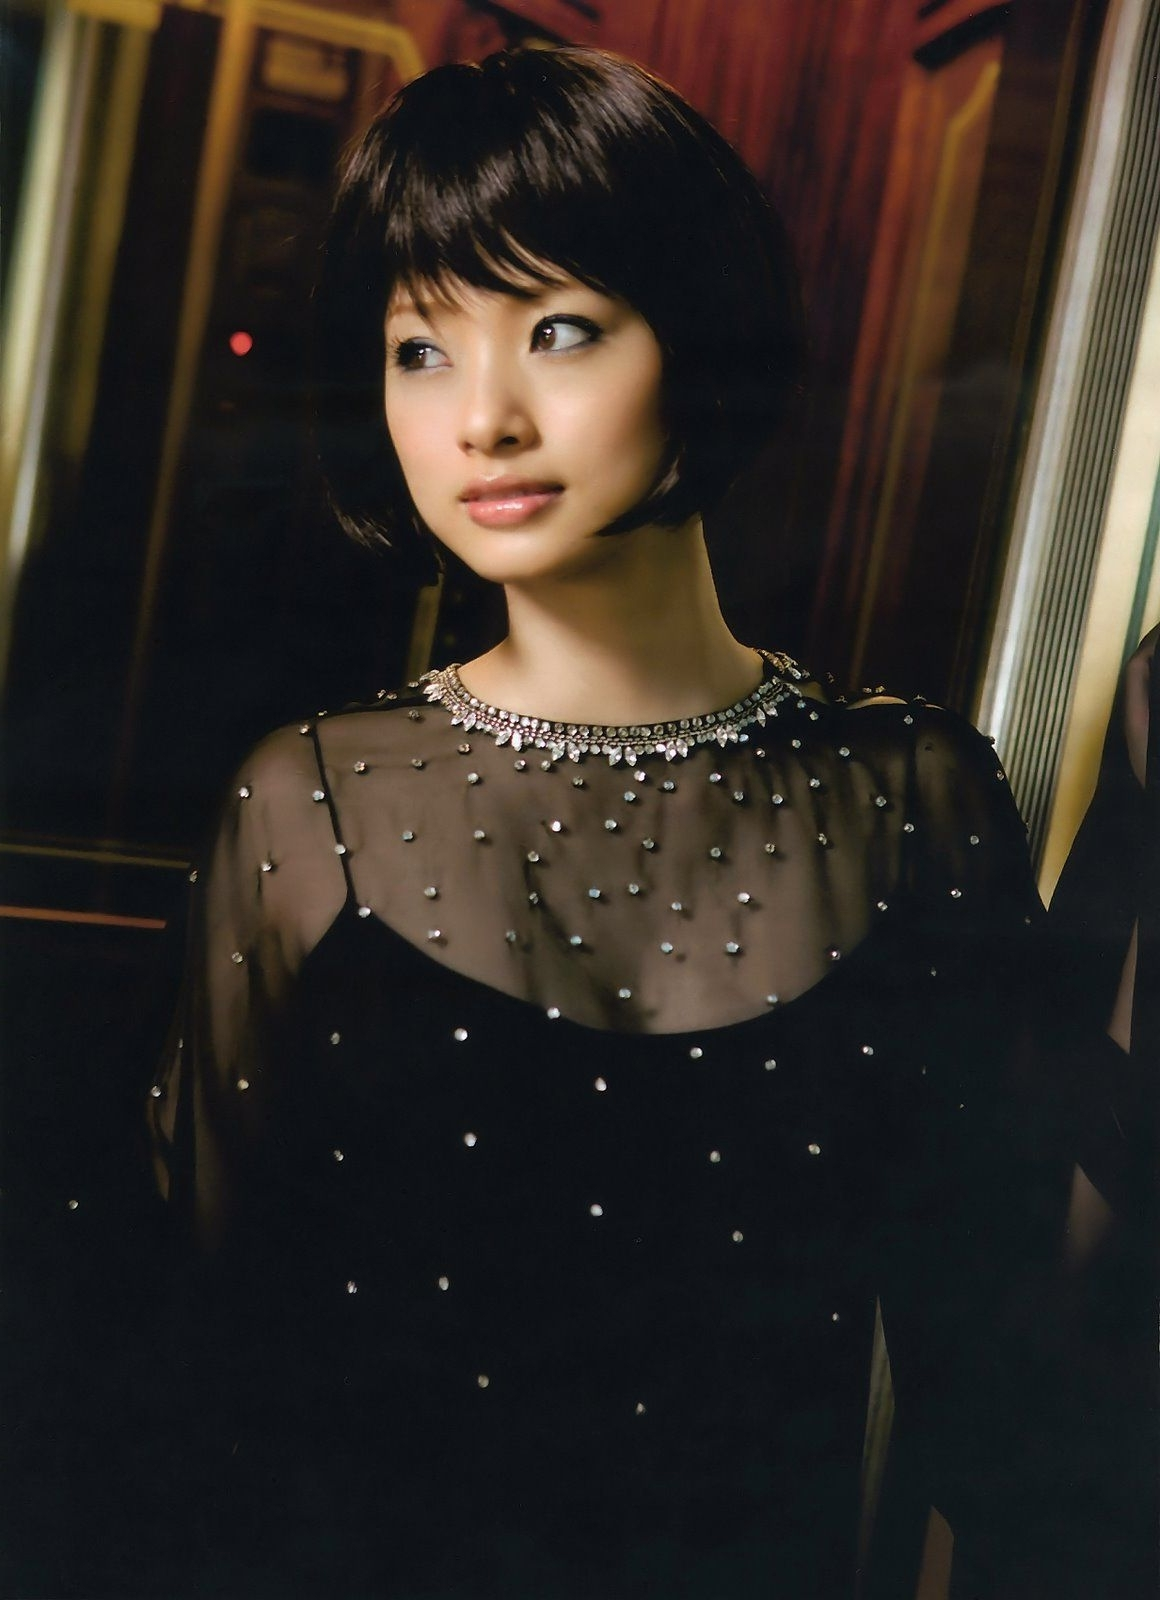 Favorite Japanese Wedding Hairstyles Intended For Waaah! Ueto Aya Looking Gorge With This Short Black Bob! #japanese (View 14 of 15)